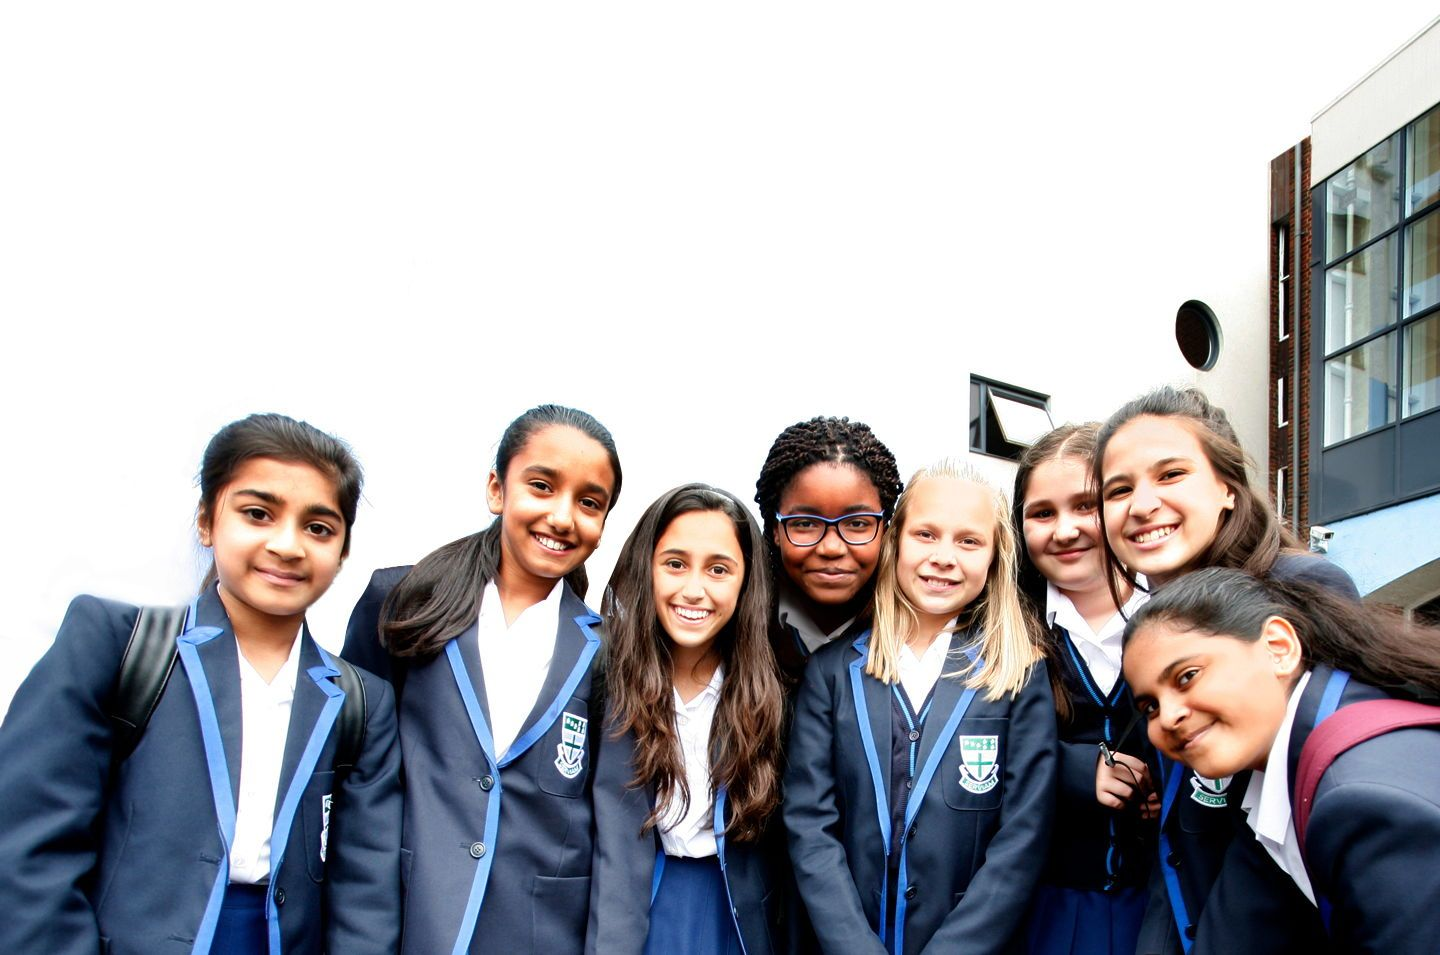 These are students of the Ursuline Academy, Ilford